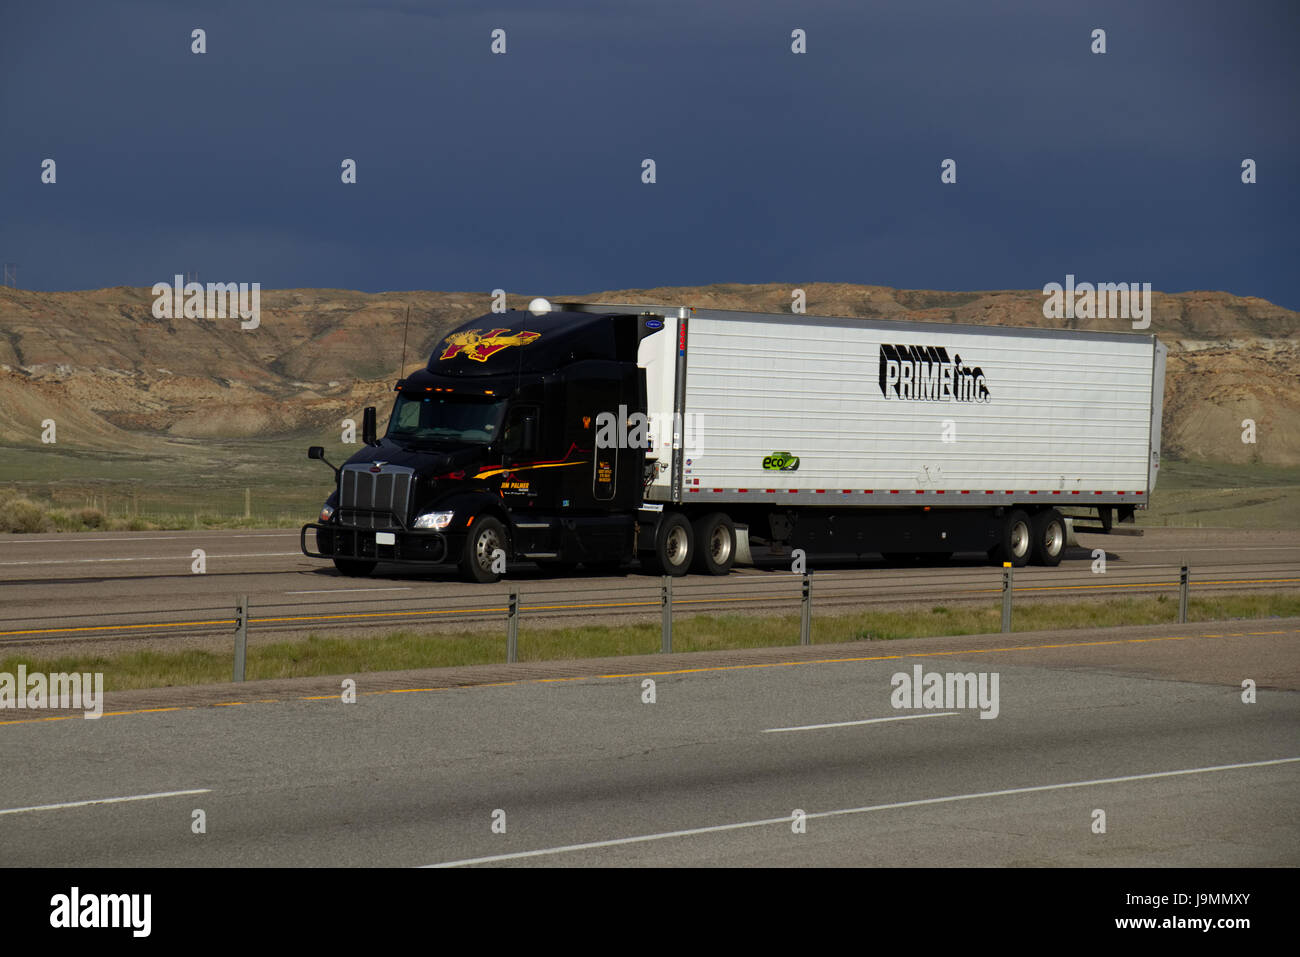 Black 'Wil Trans' Peterbilt Semi-Truck pulling a white 'Prime Inc.' Trailer along a rural US Highway. - Stock Image